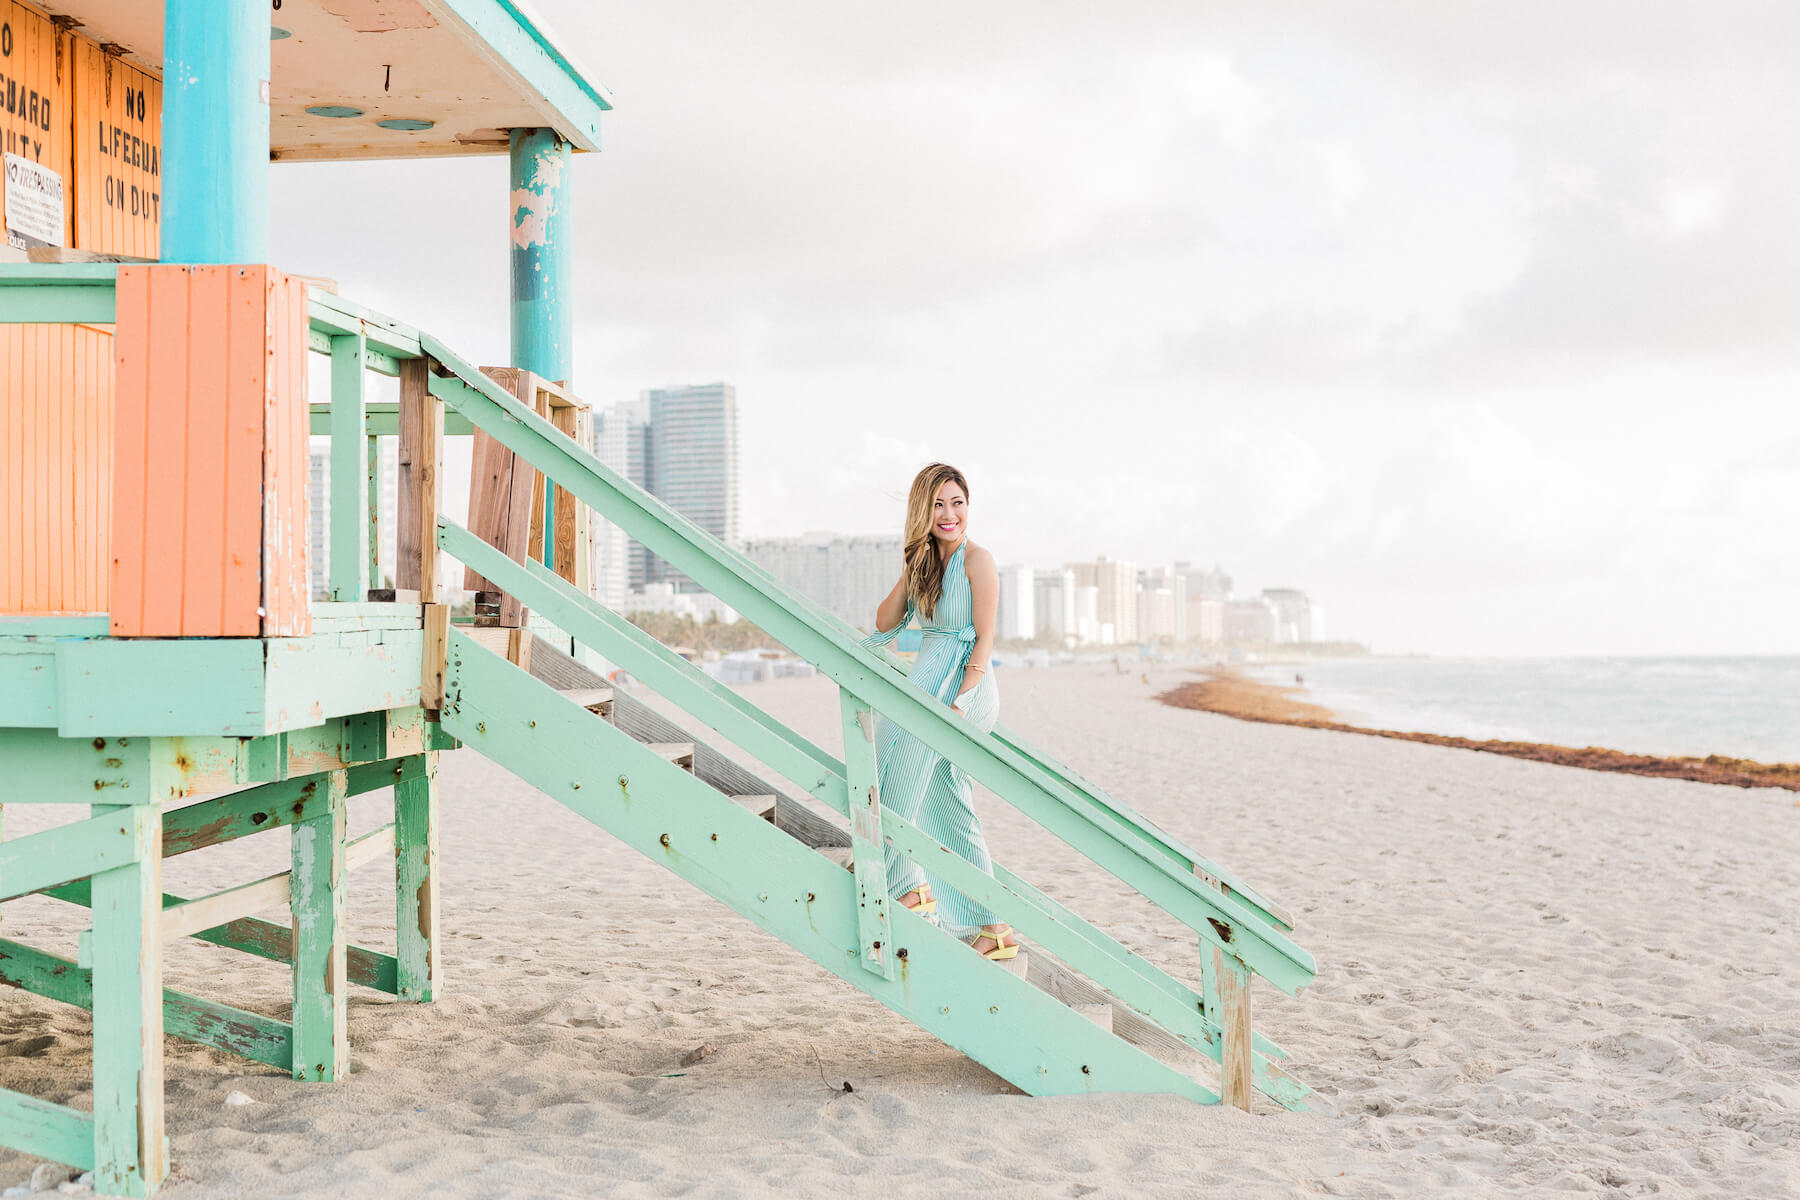 Solo traveller standing on a lifeguard station ramp on the beach in Miami, Florida